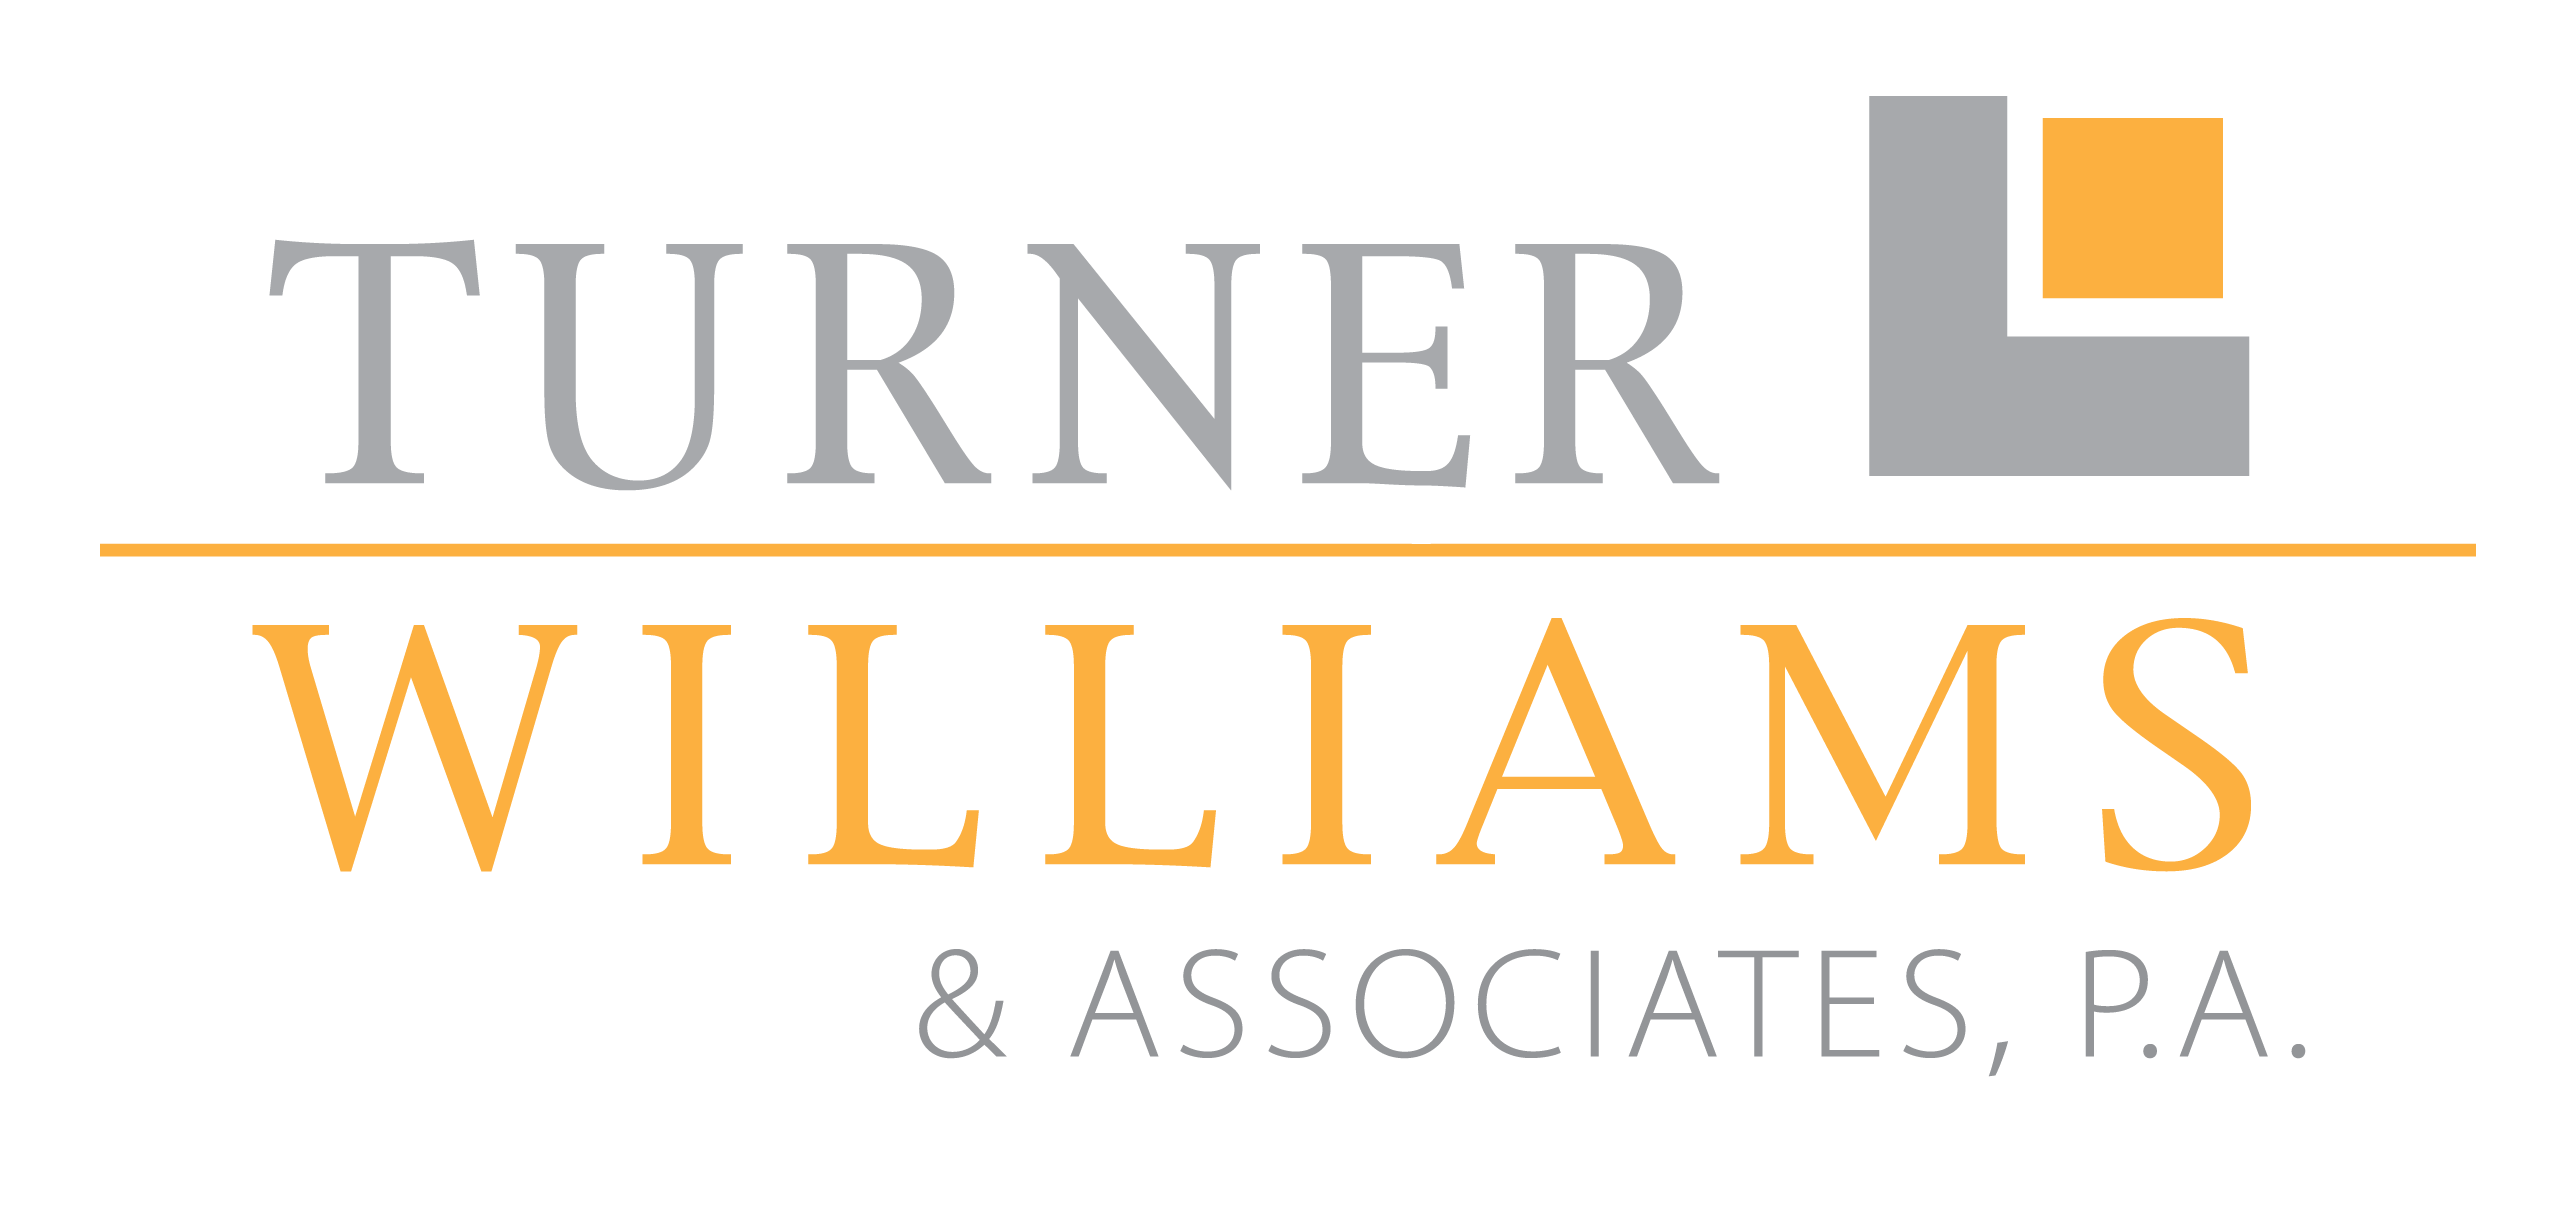 Turner Williams and Associates